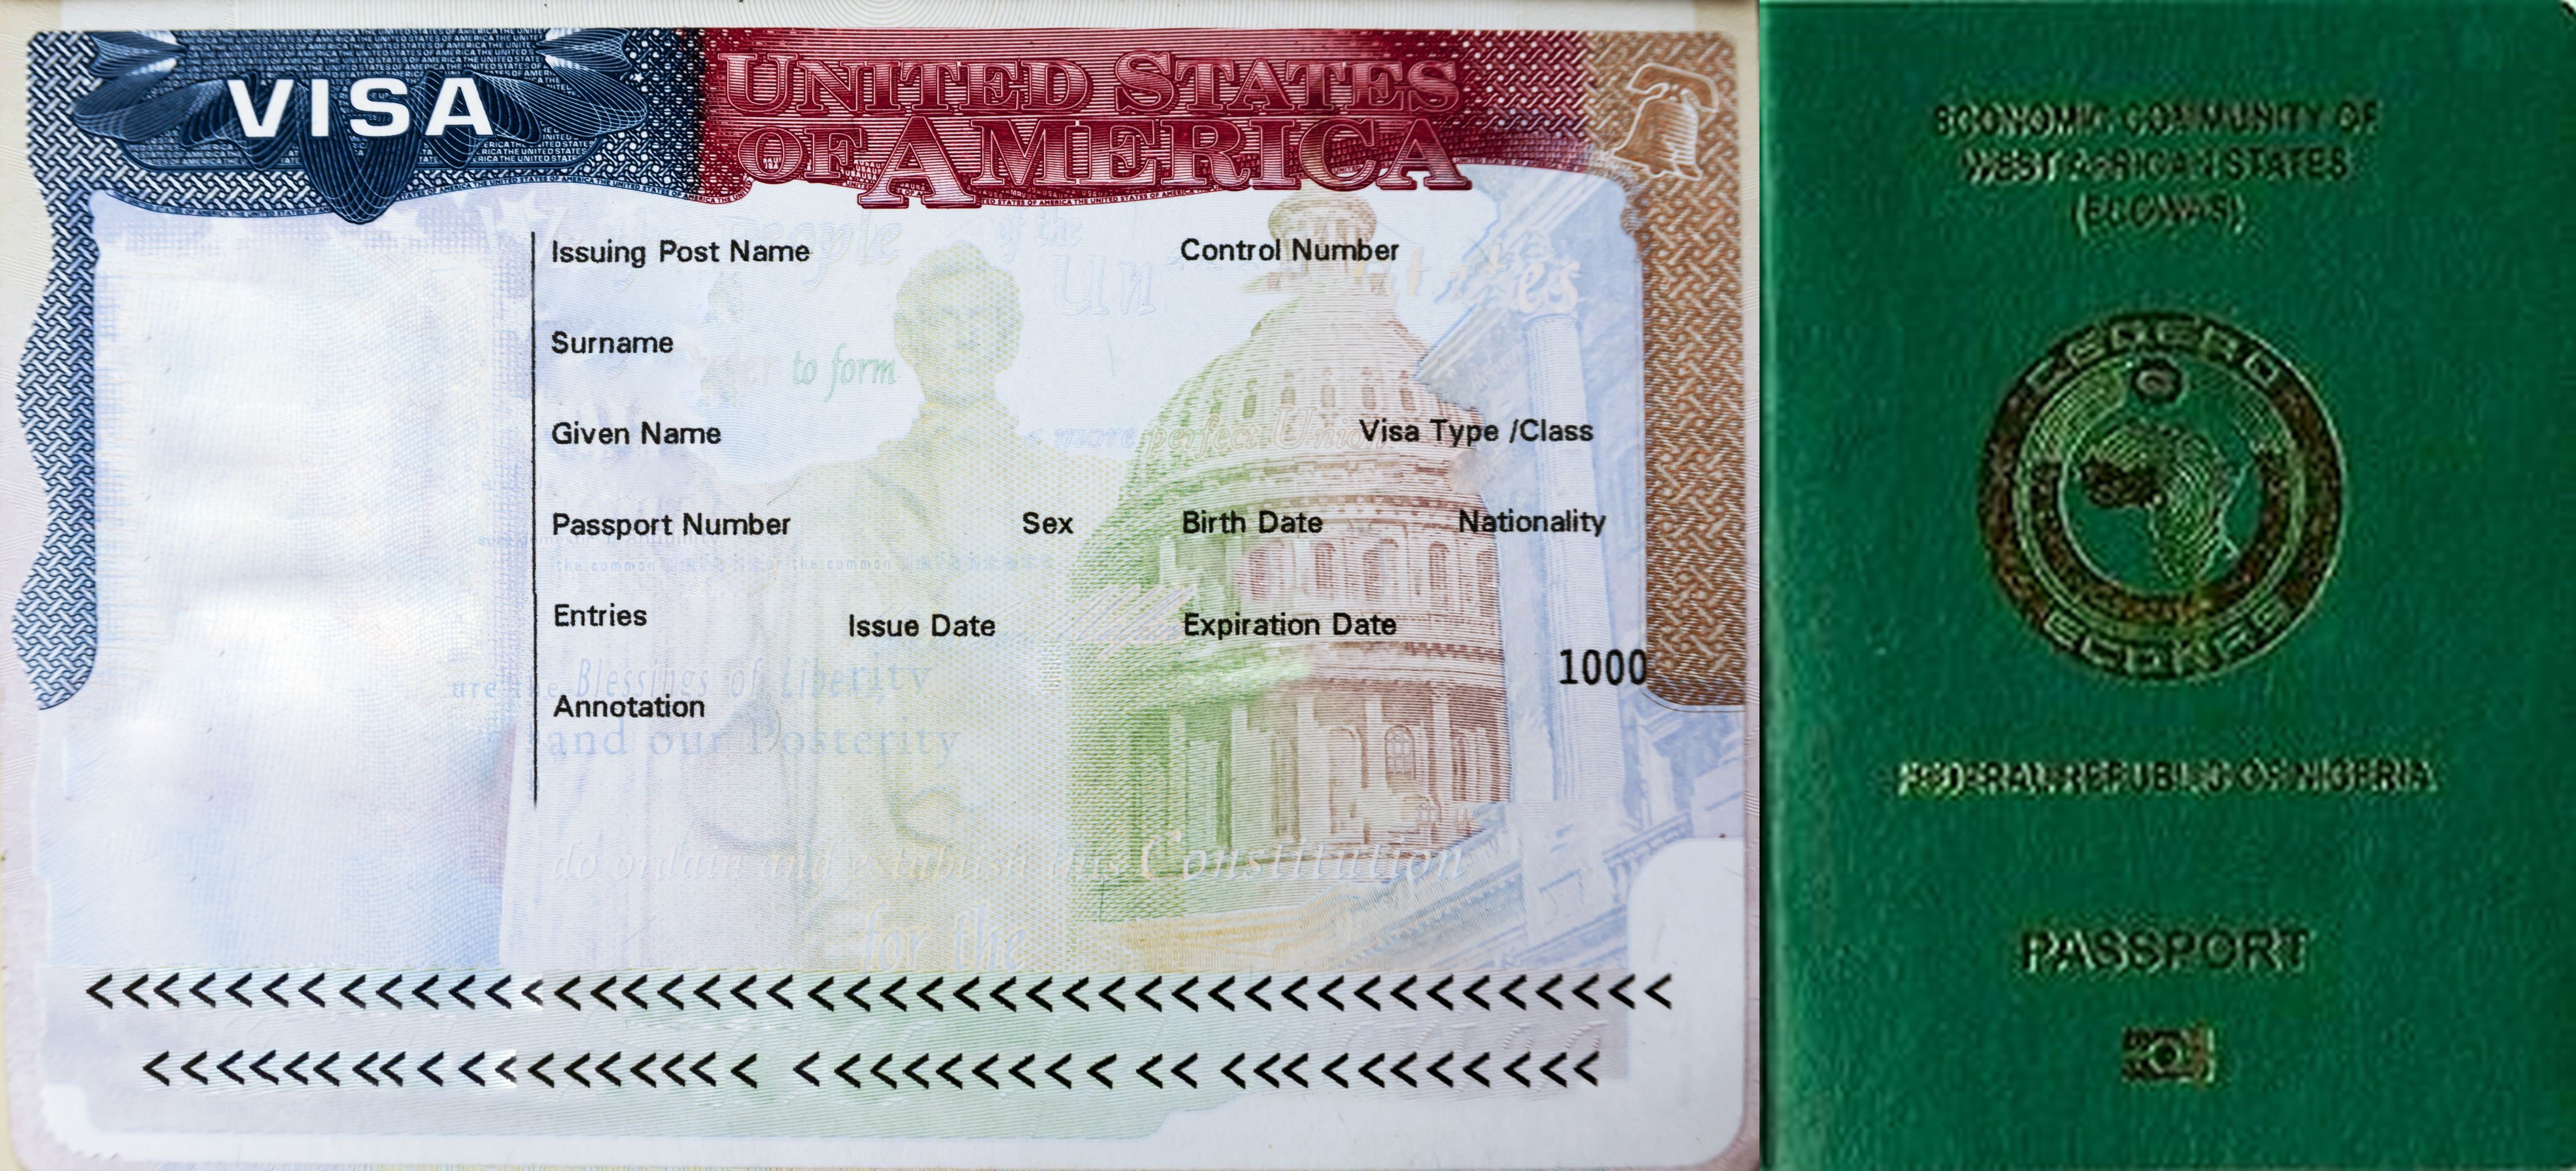 Find out the new method for American Visa application | e-nigerian! - www.e-nigeriang.com